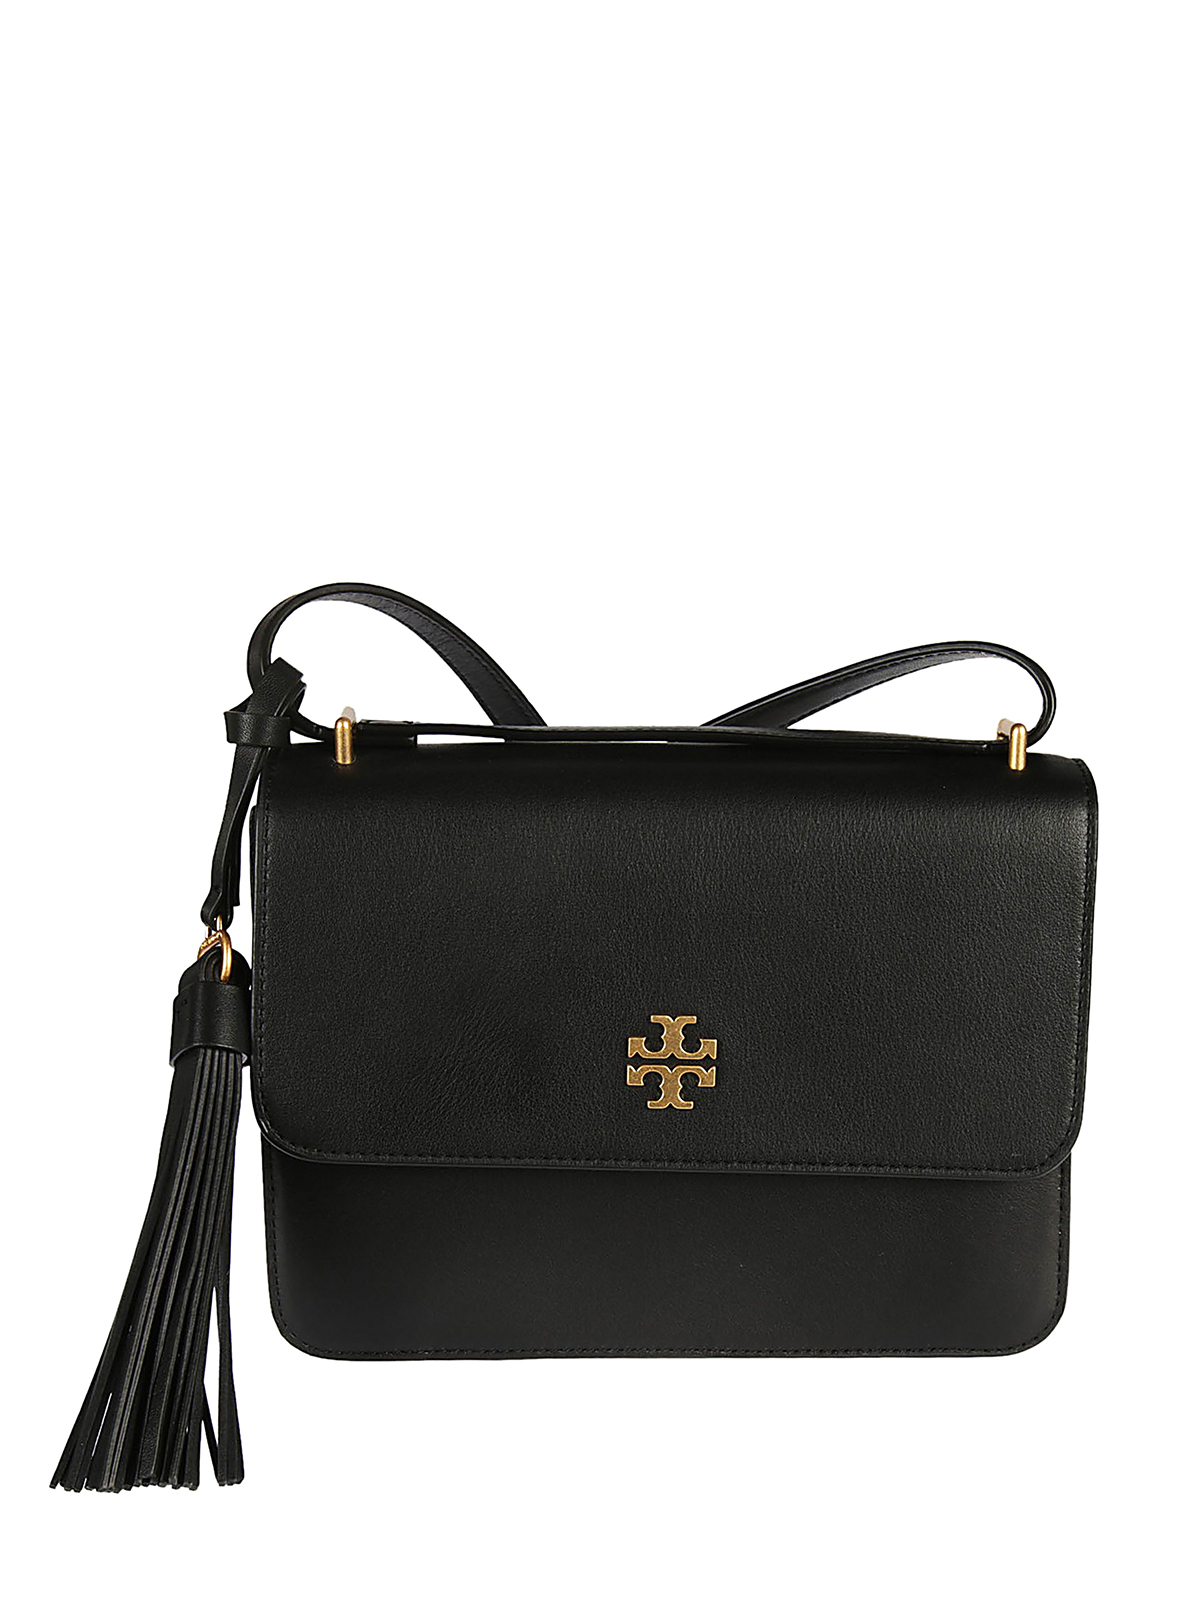 2dfd01e4ae76 Tory Burch - Brooke leather shoulder bag - shoulder bags - 44778 001